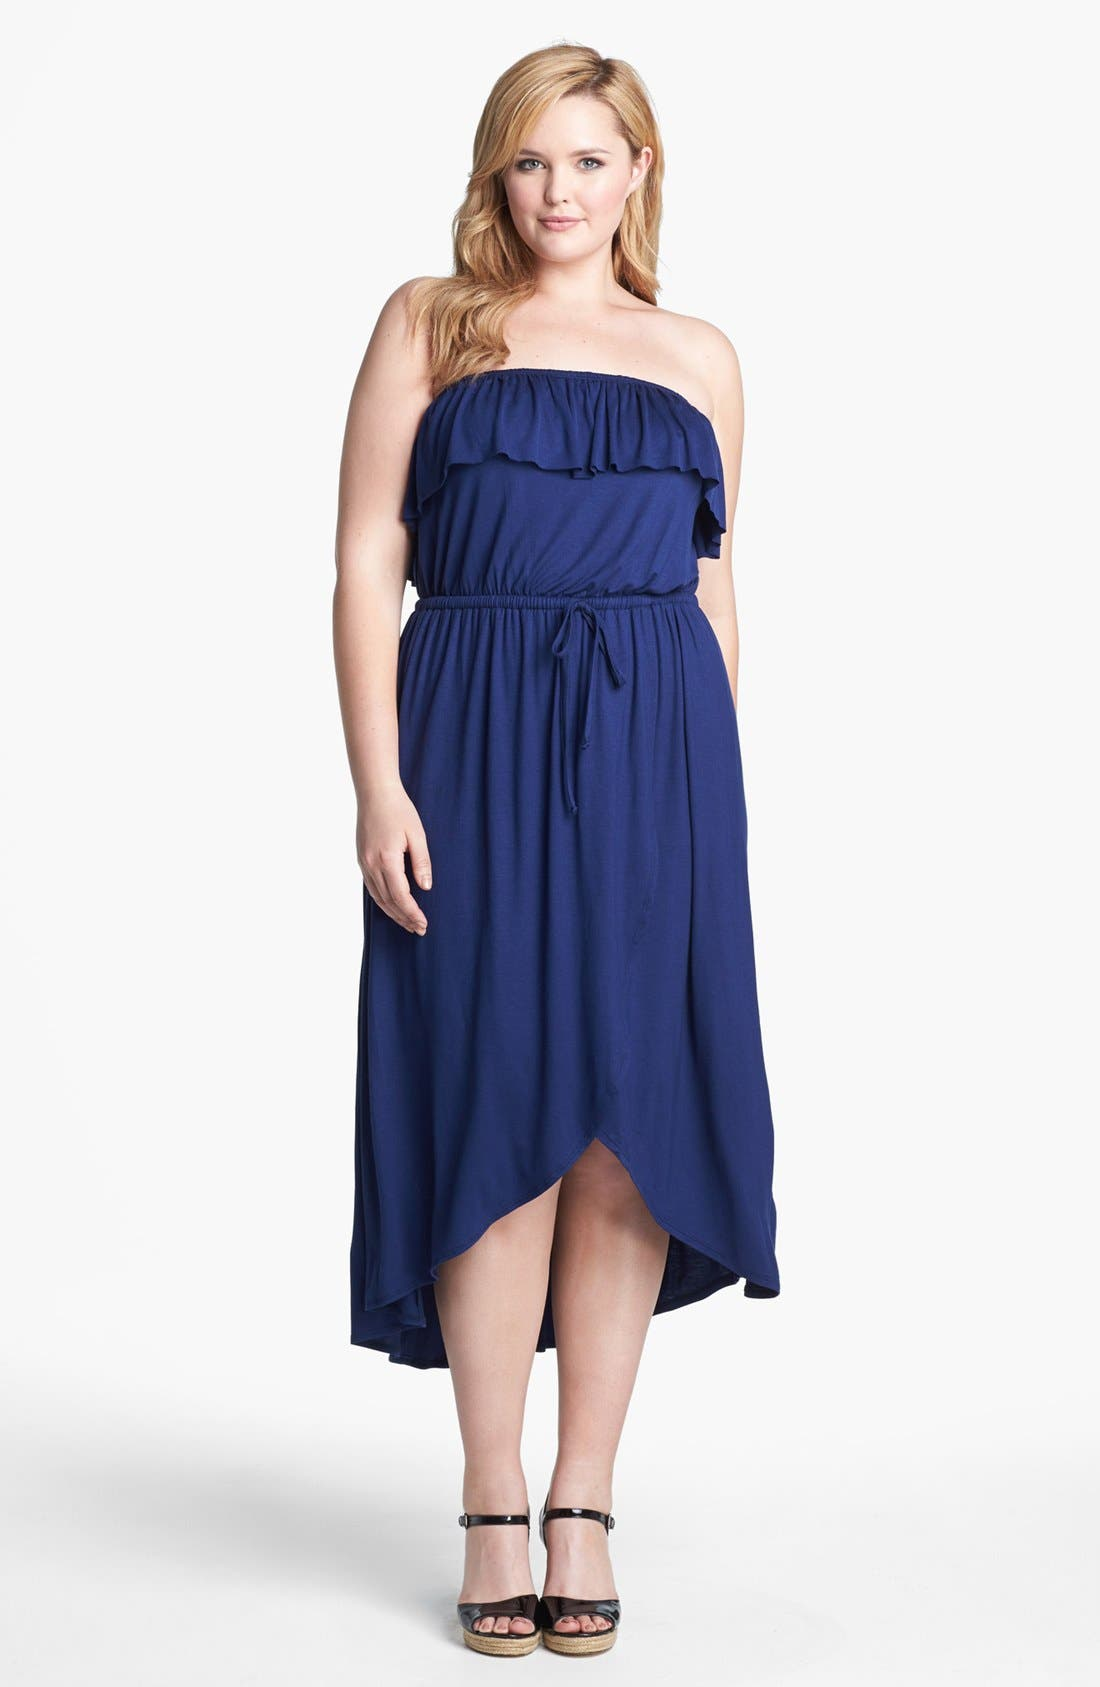 Alternate Image 1 Selected - Sweet Pea by Stacy Frati Ruffled High/Low Jersey Dress (Plus Size)